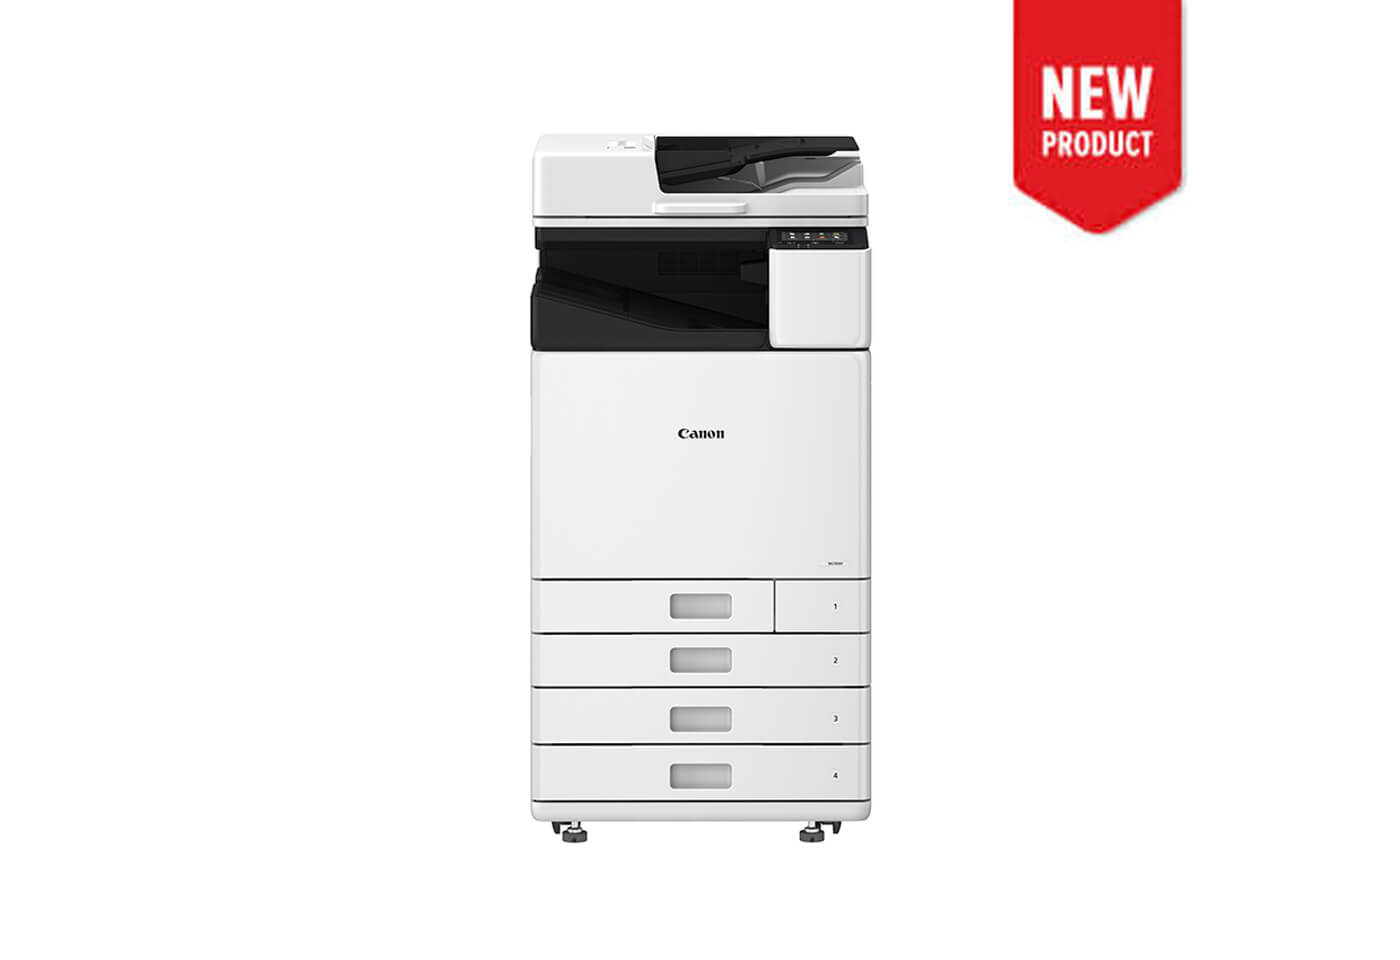 Product image of WG7000 Series MFD Printer